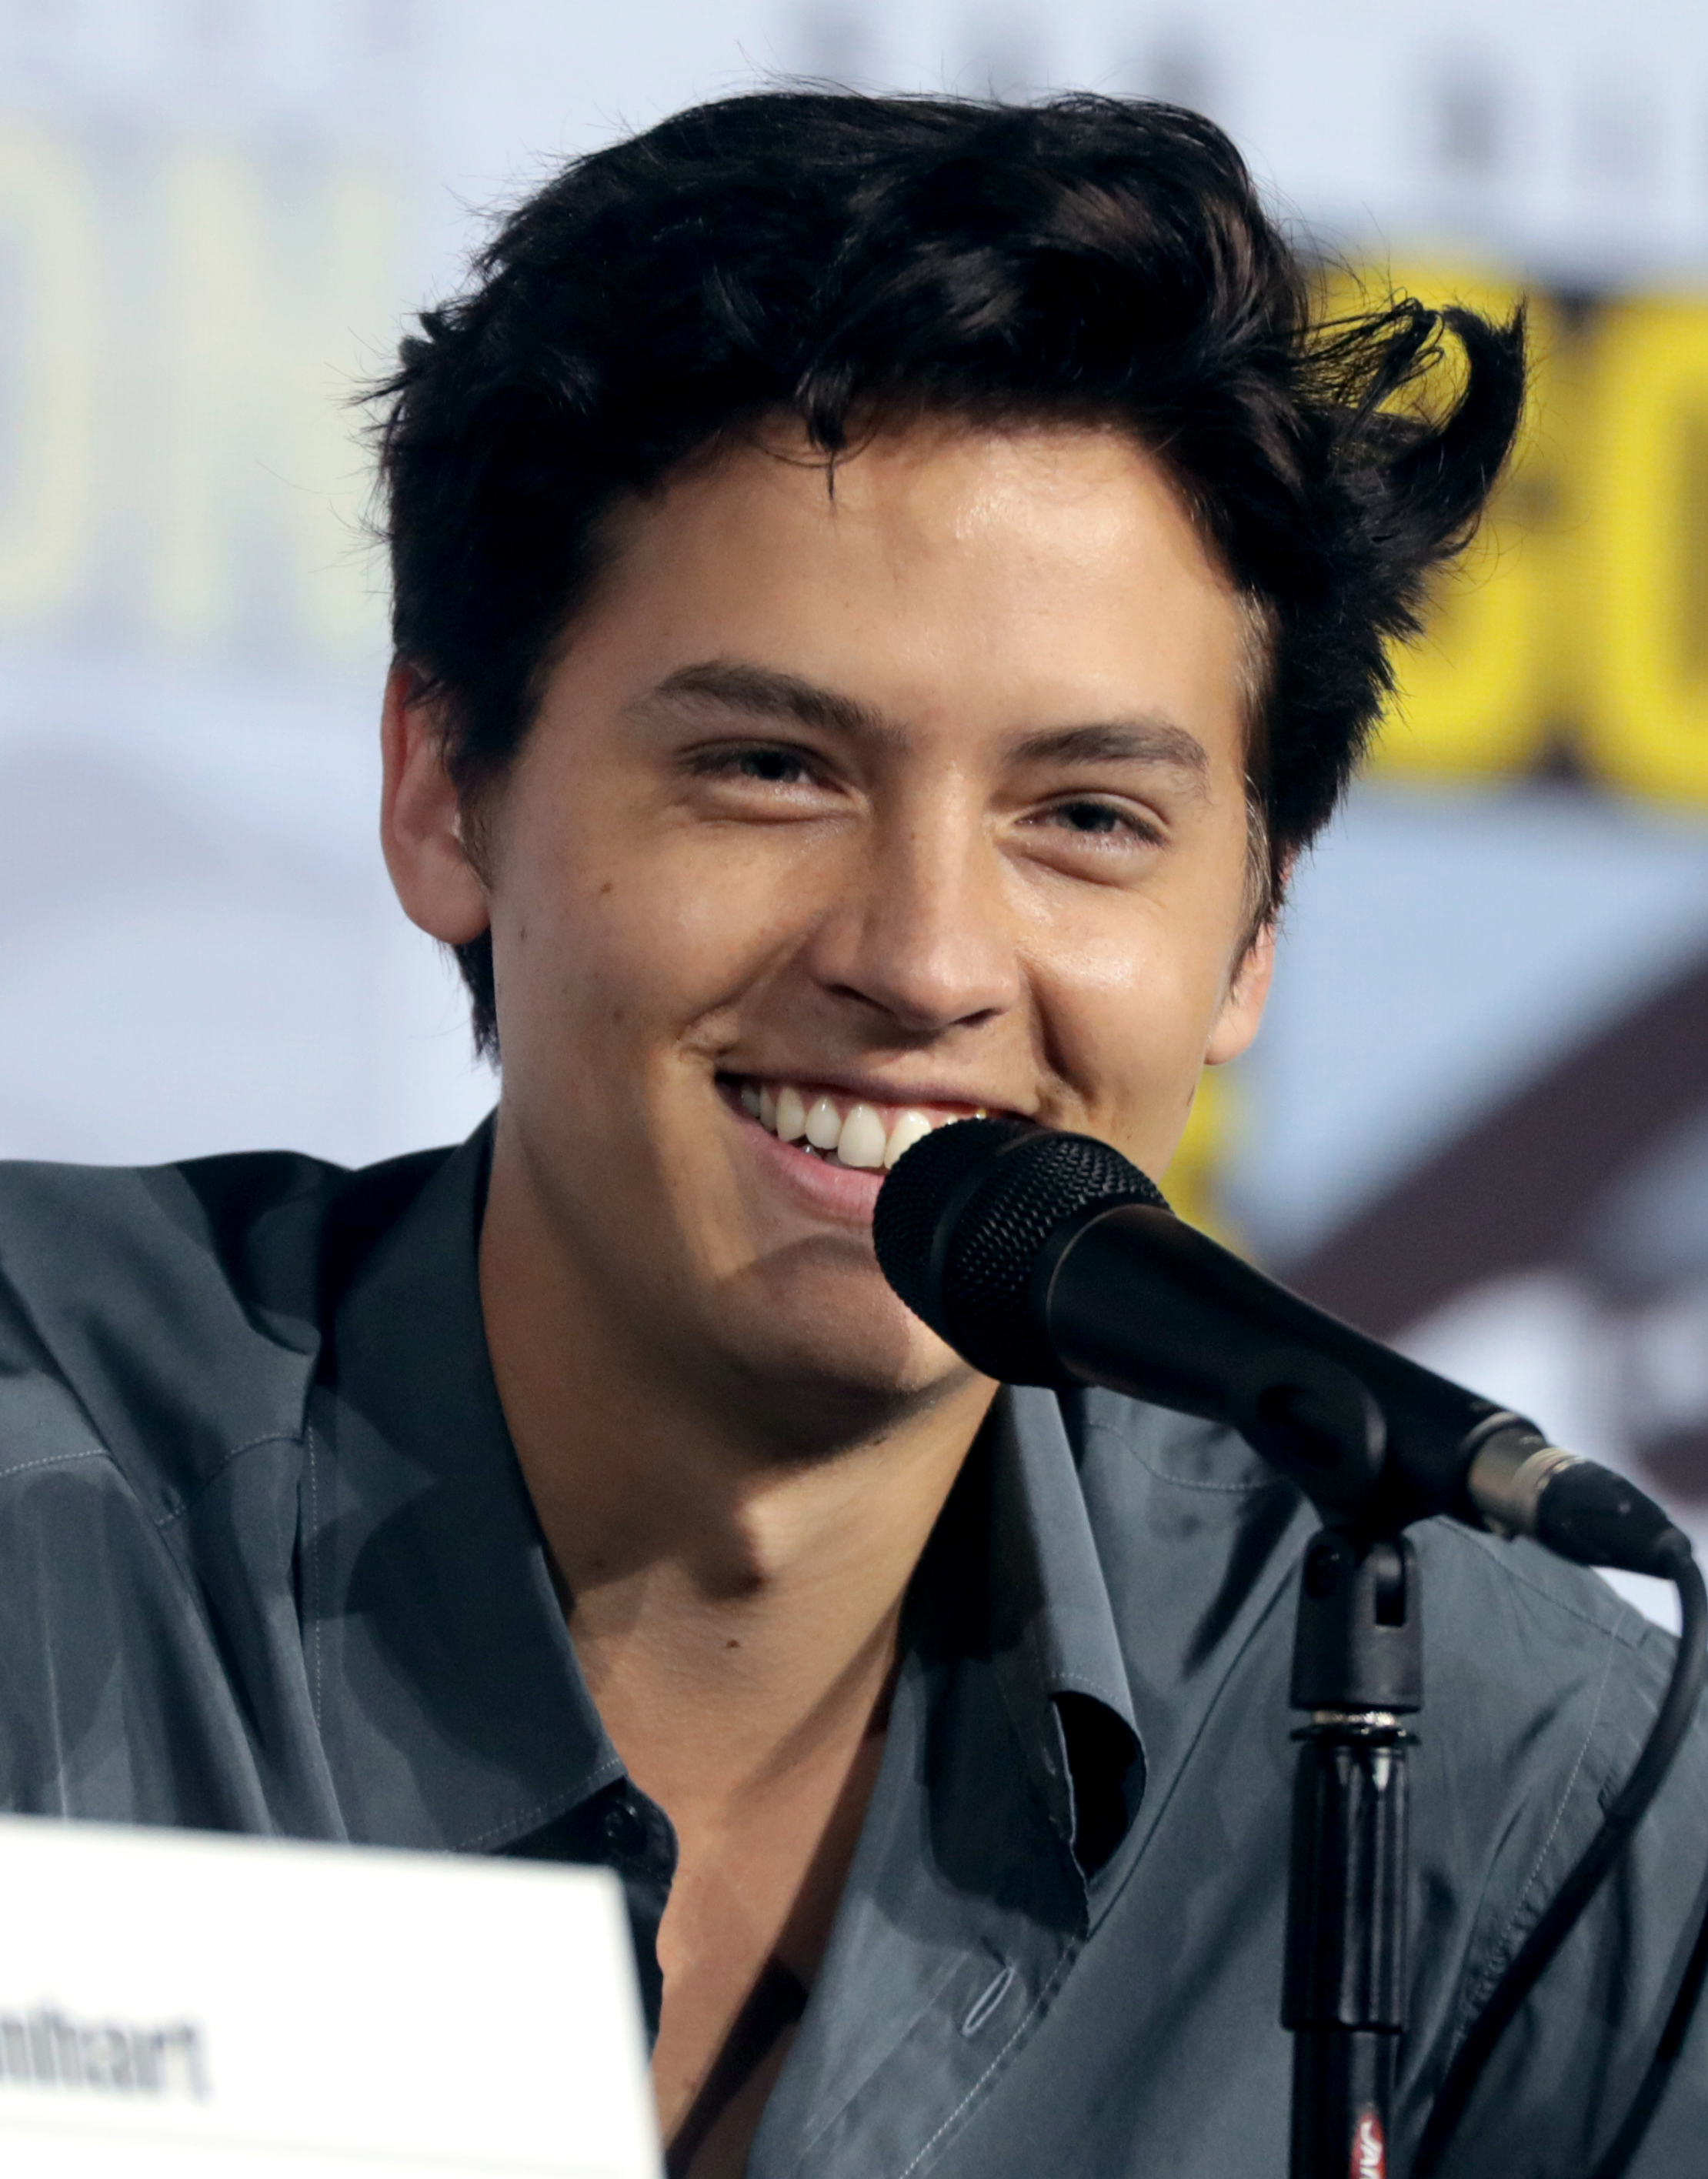 Sprouse at [[San Diego Comic-Con]] in 2019